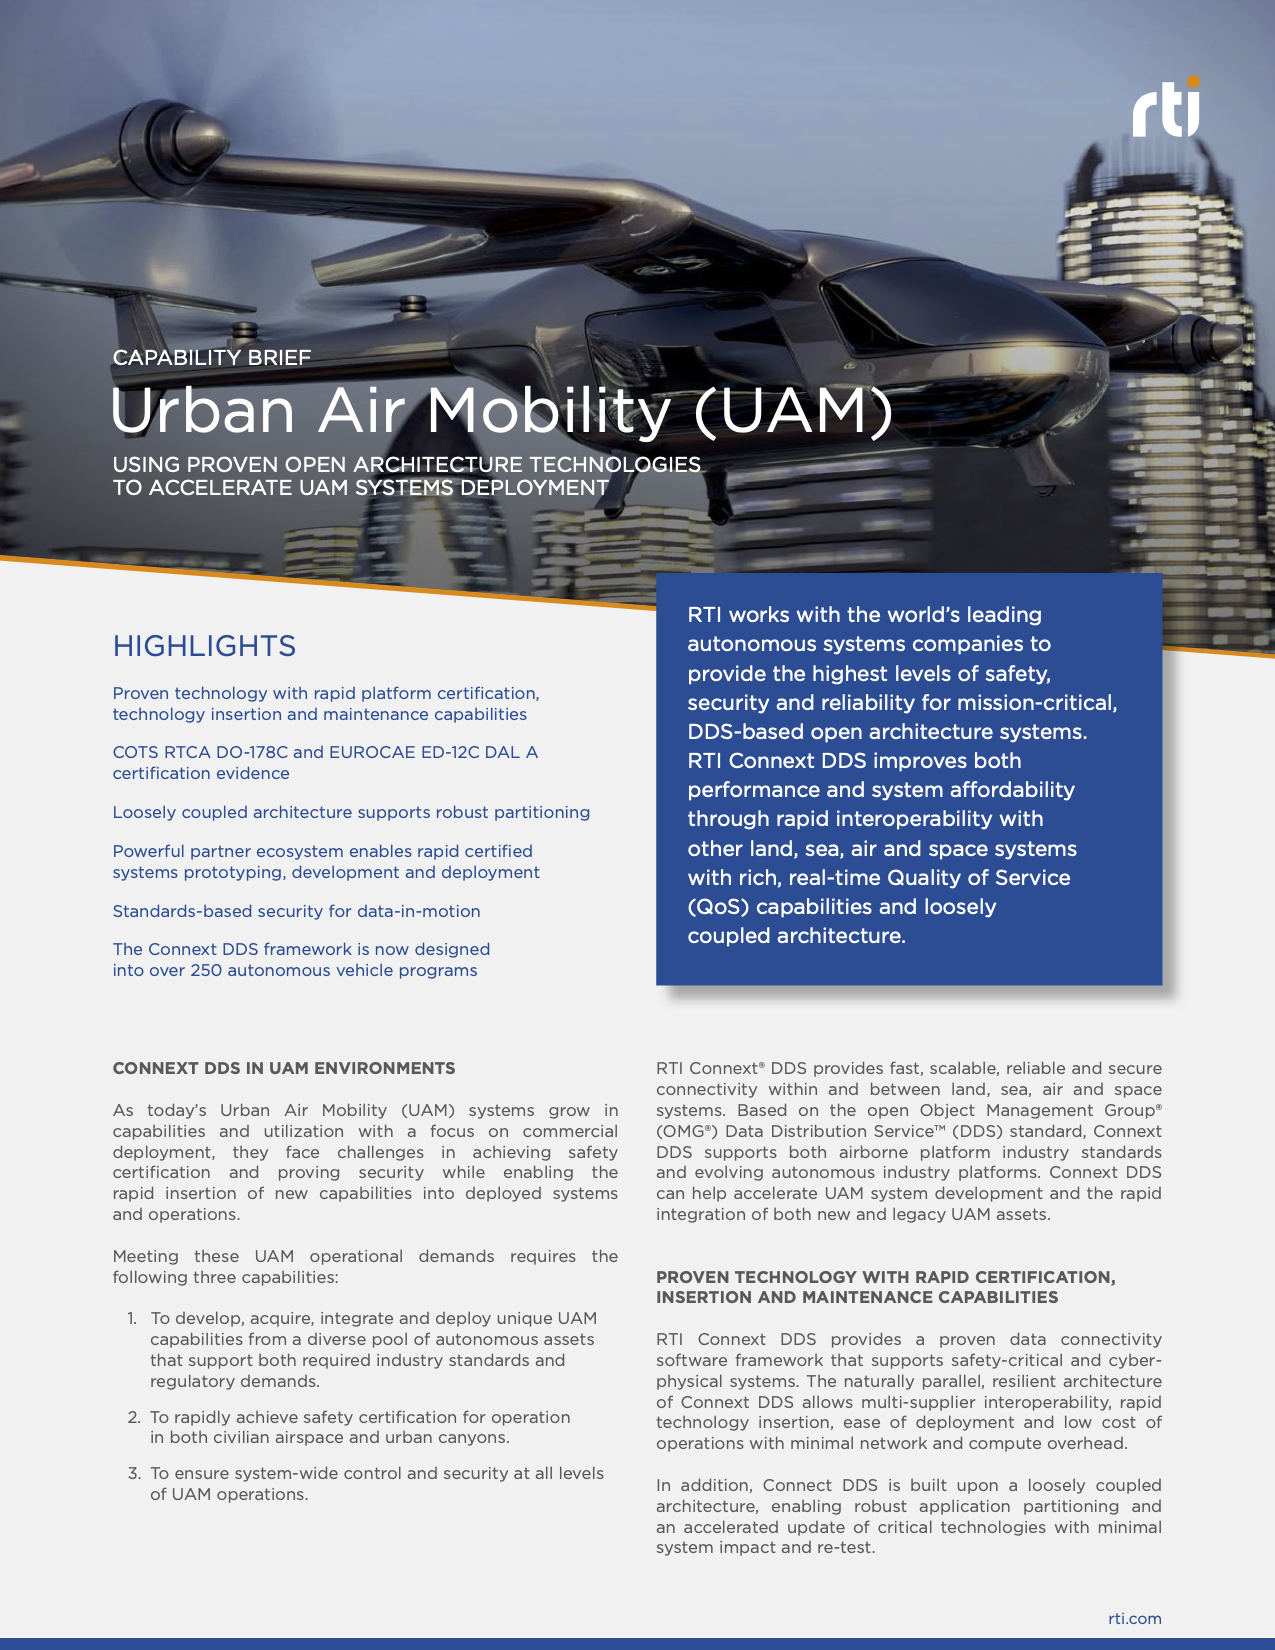 rti-capability-brief-urban-air-mobility